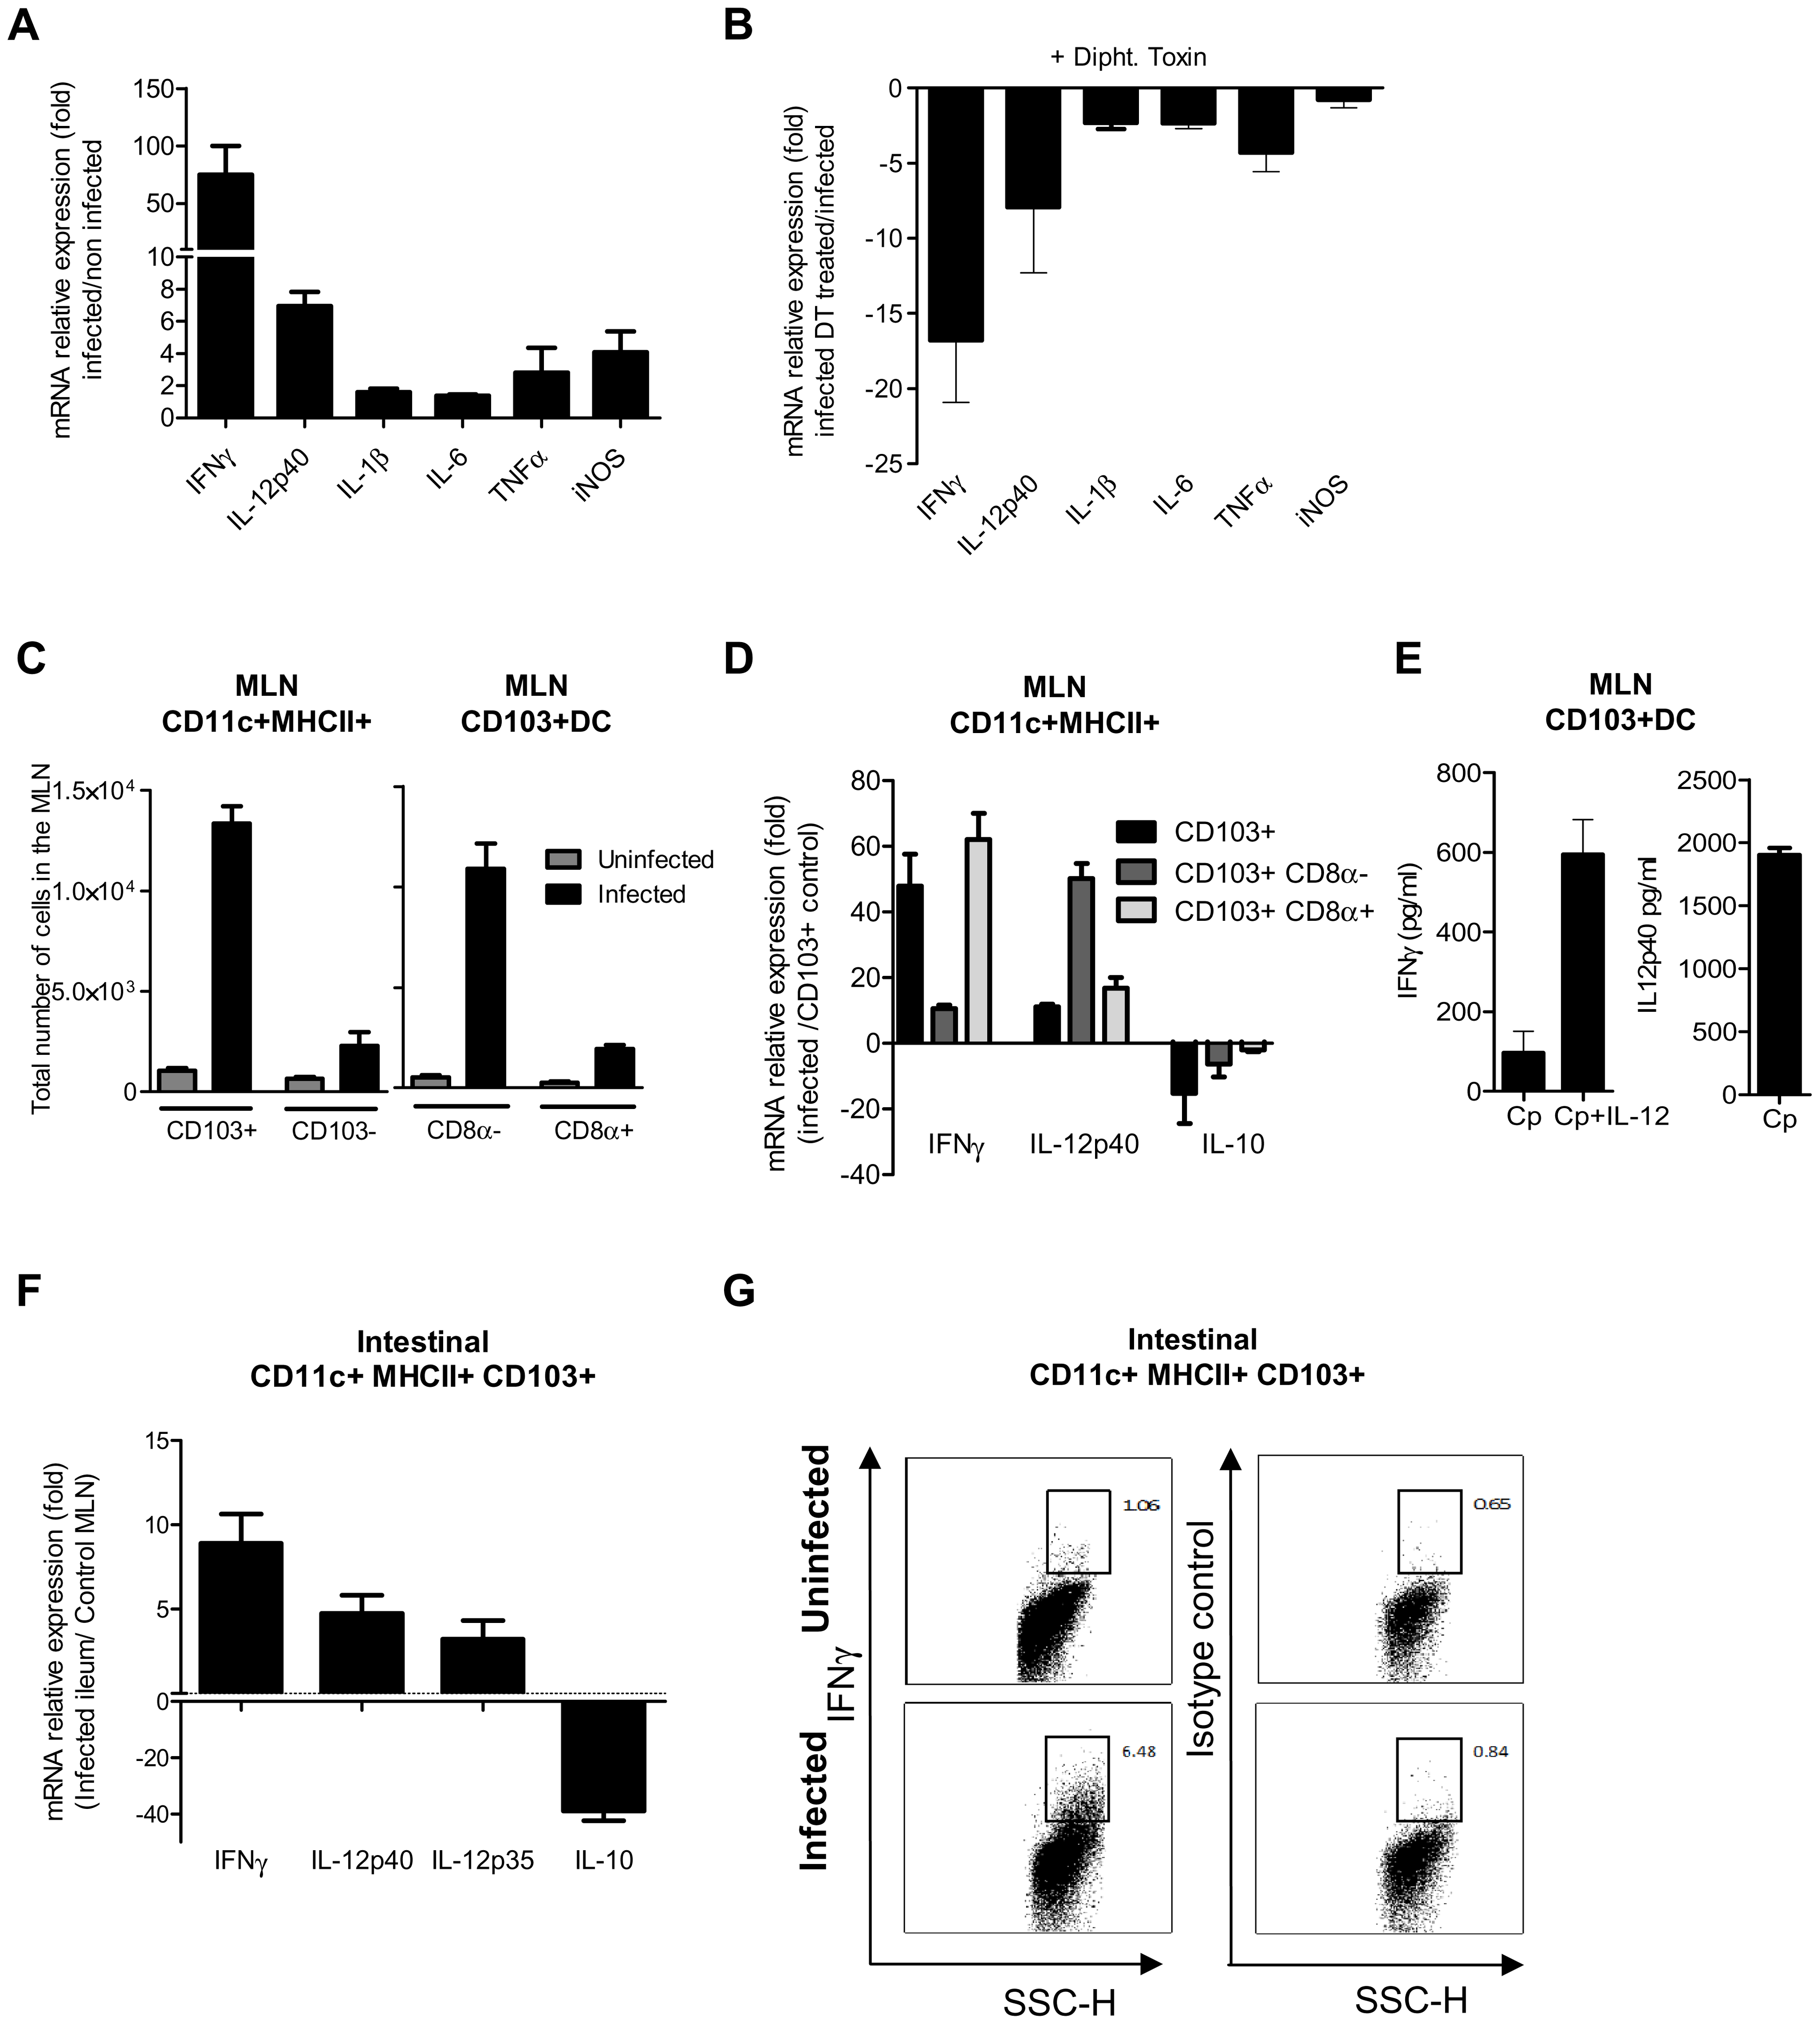 CD103+ dendritic cell subsets contribute to IL-12p40 and IFNγ production.